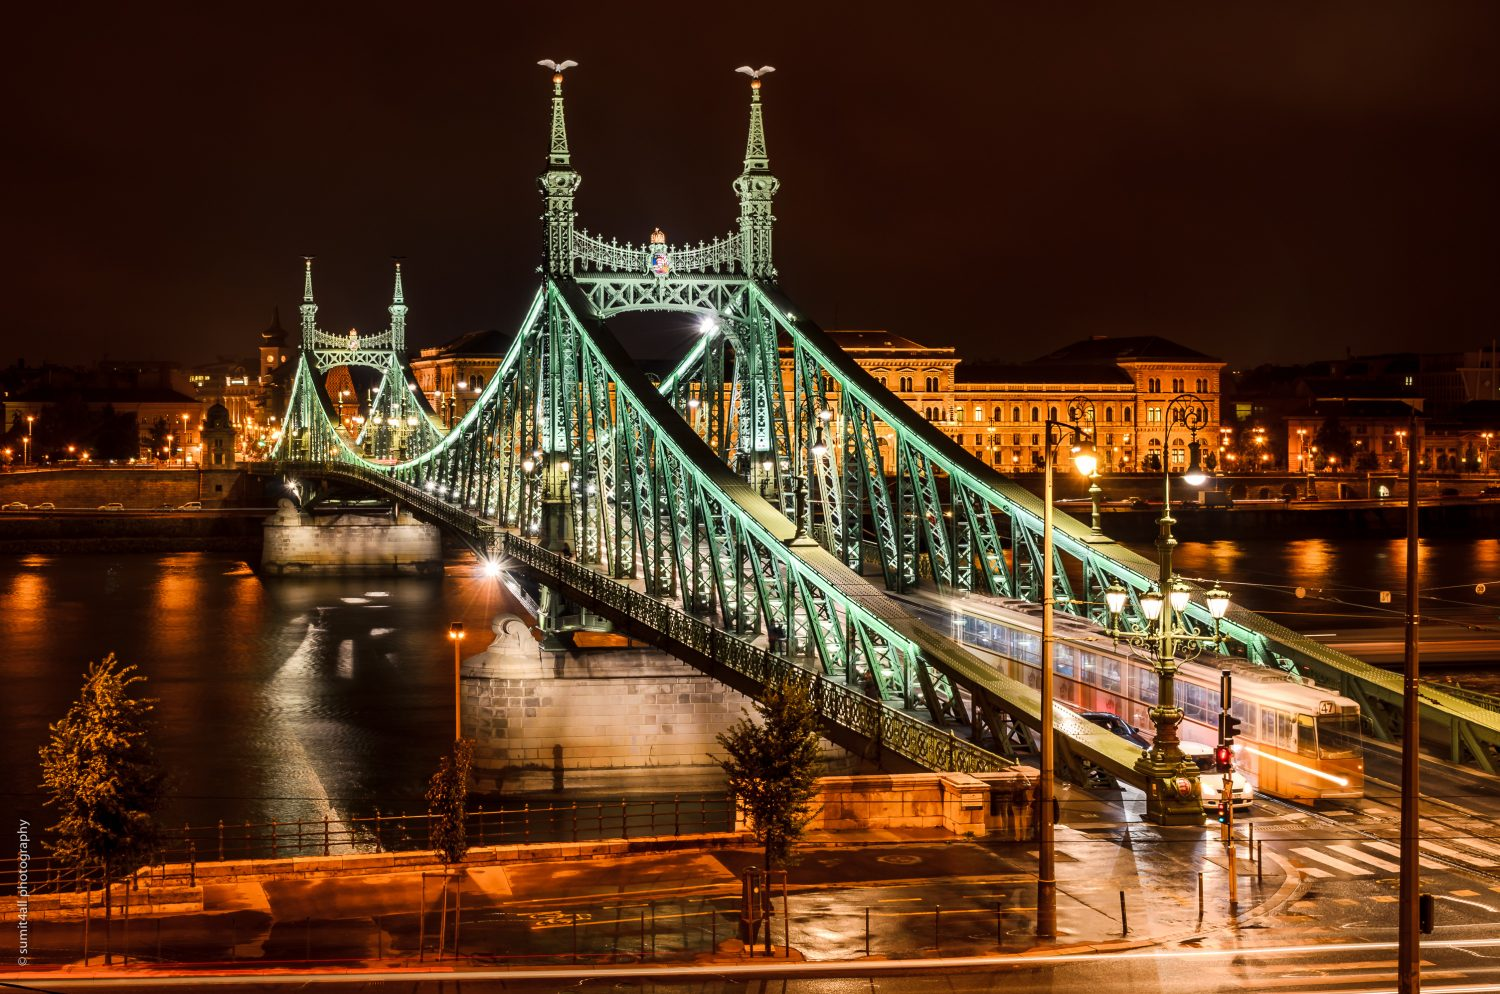 The Liberty Bridge in Budapest as seen from the Gellert Hill